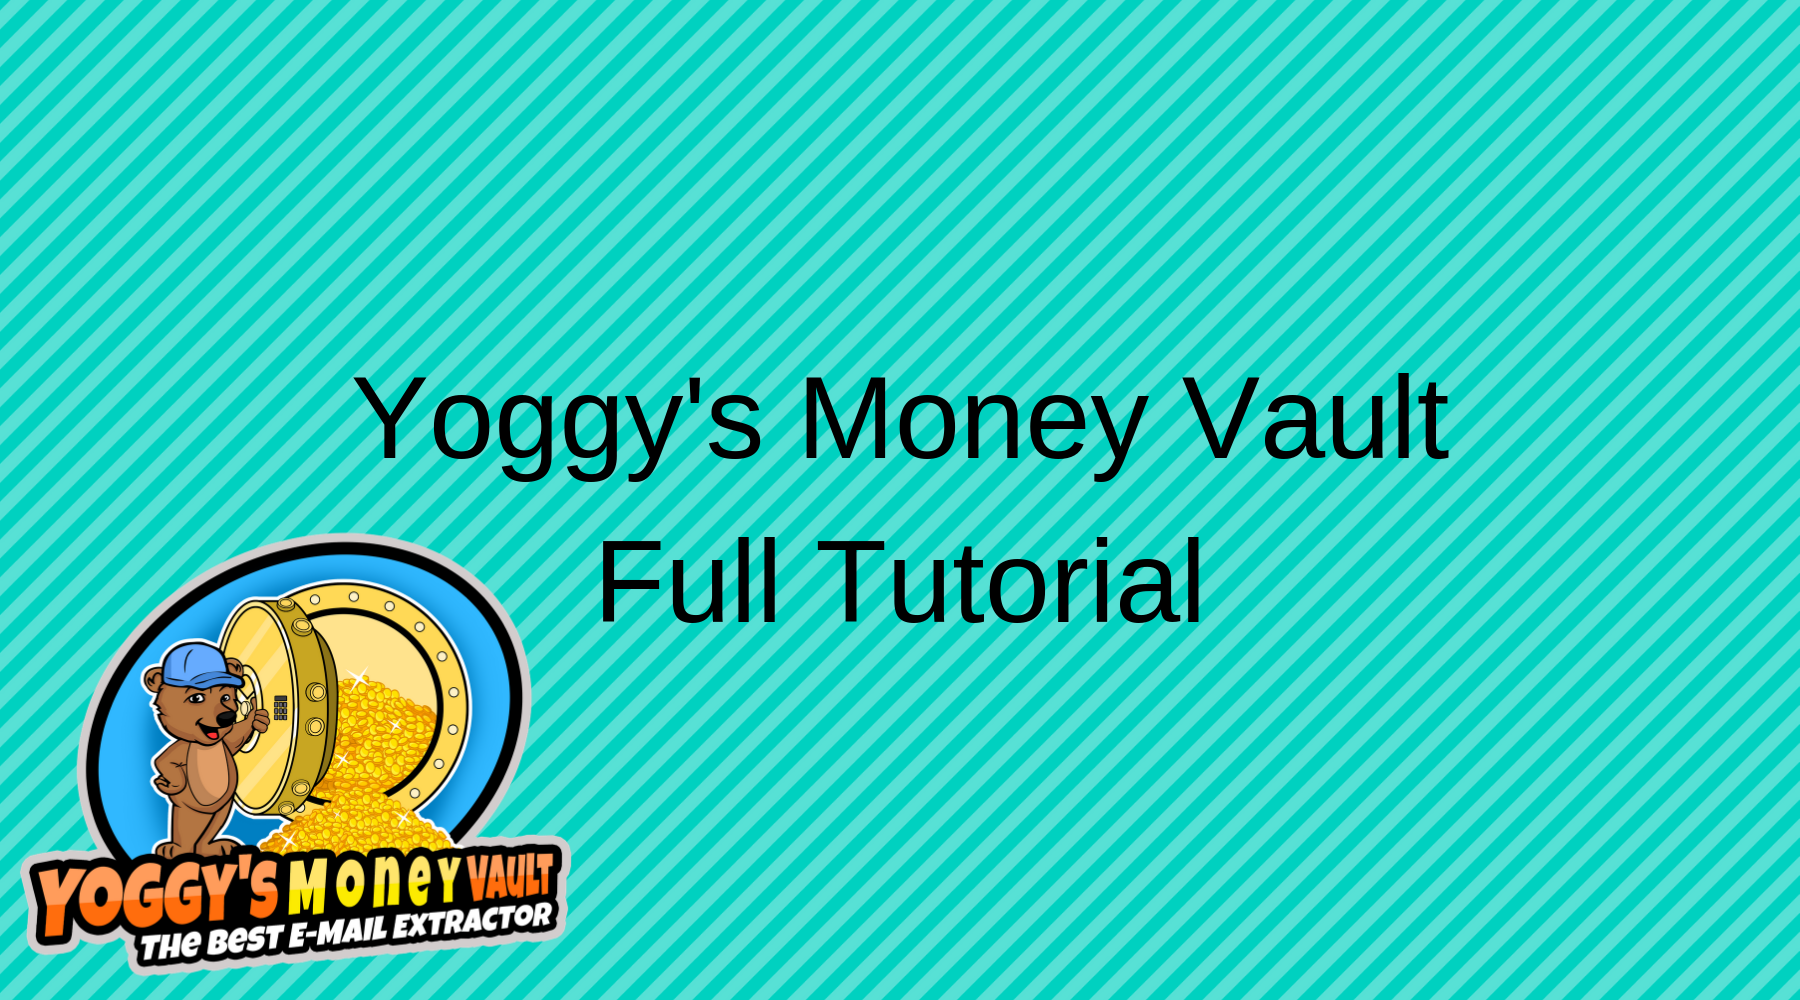 Yoggys Money Vault Full Tutorial